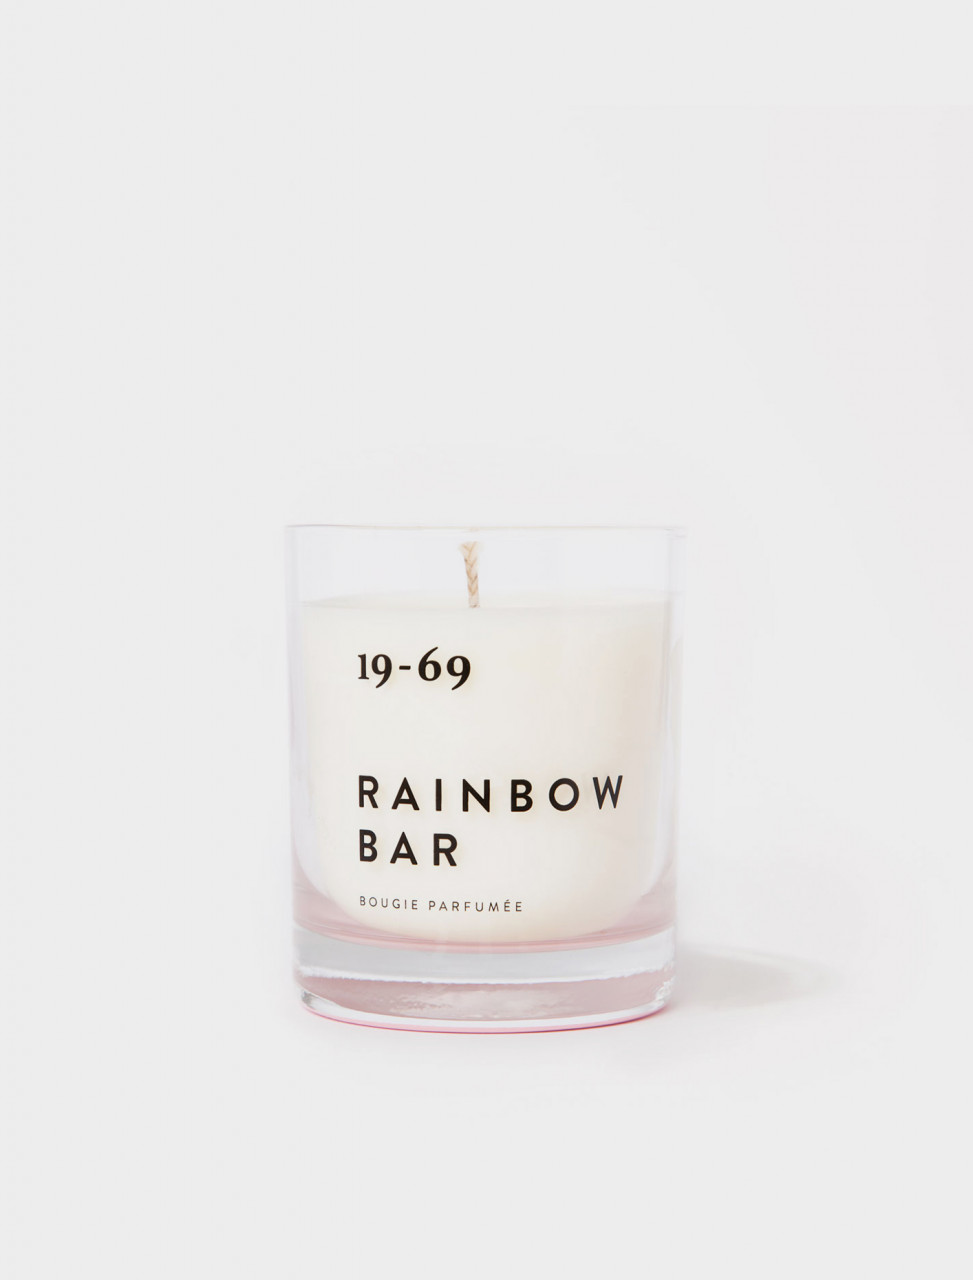 305-900024 19-69 RAINBOW BAR SCENTED CANDLE